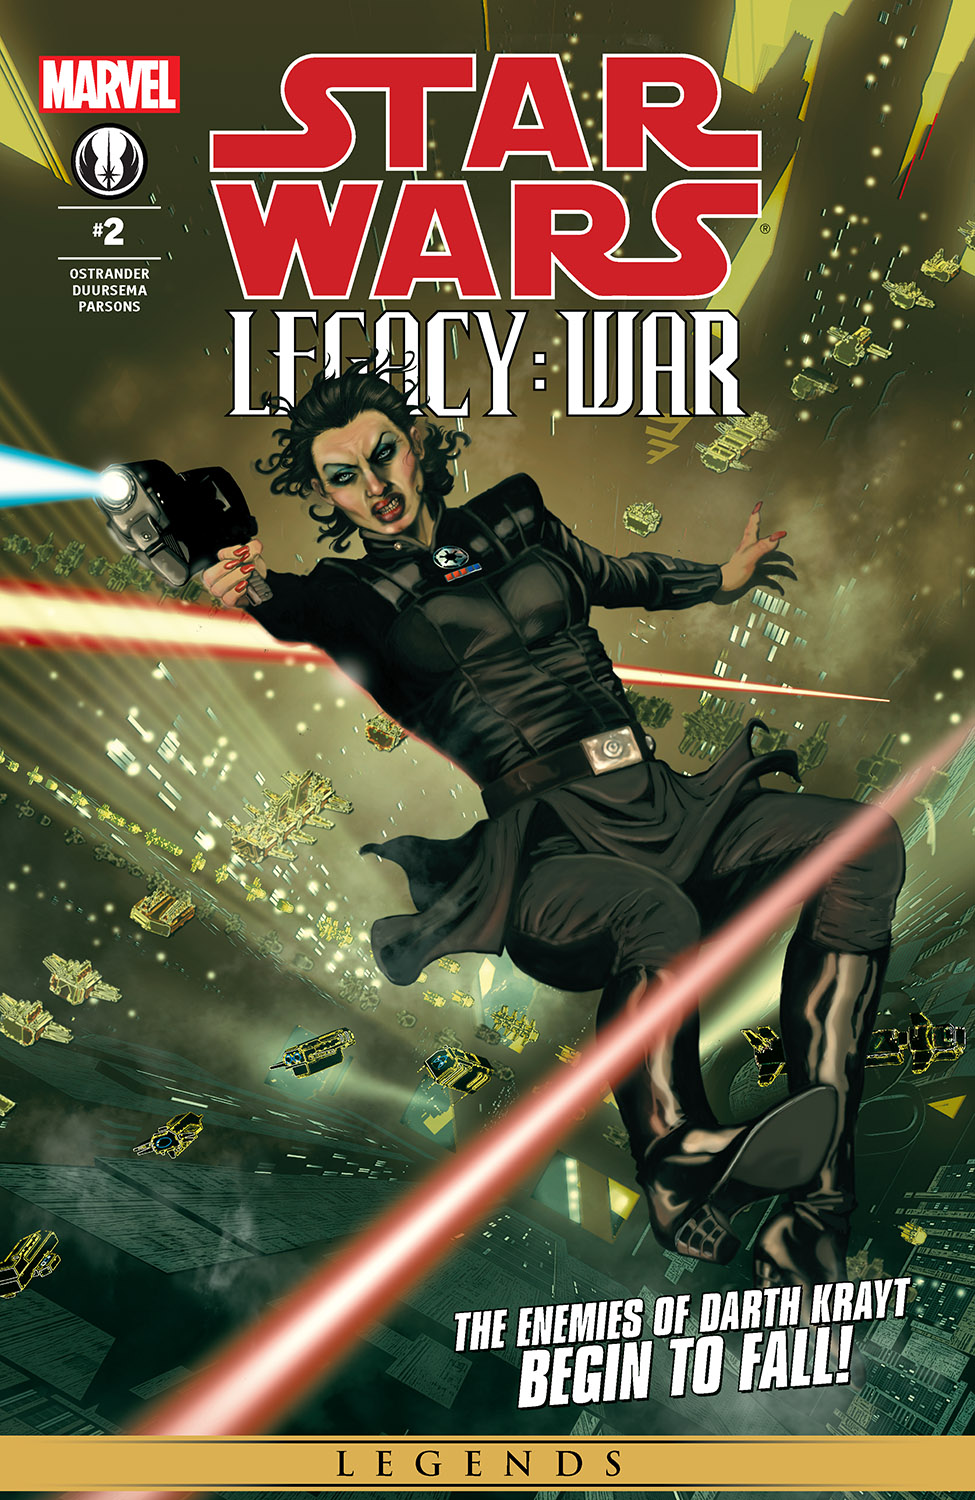 Star Wars: Legacy - War (2010) #2